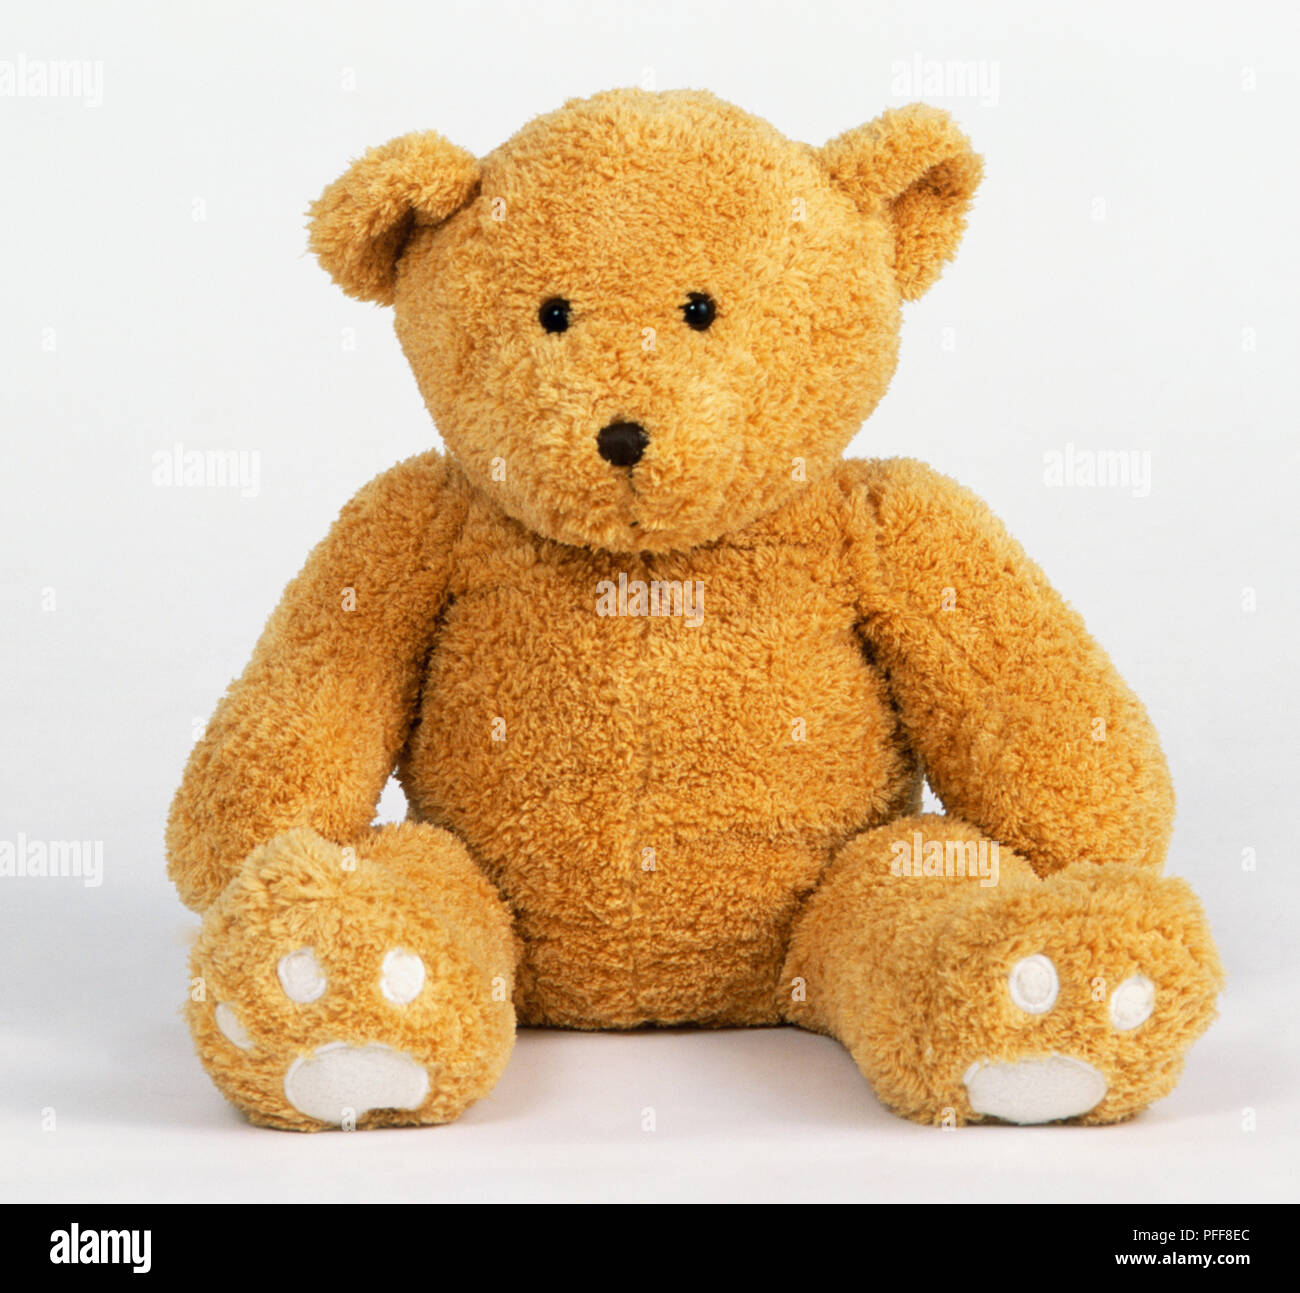 Sitting Yellow Teddy Bear Front View Stock Photo Alamy Traffic estimate for bearfront.com is about 910 unique visits and 7,553 page views per day. alamy